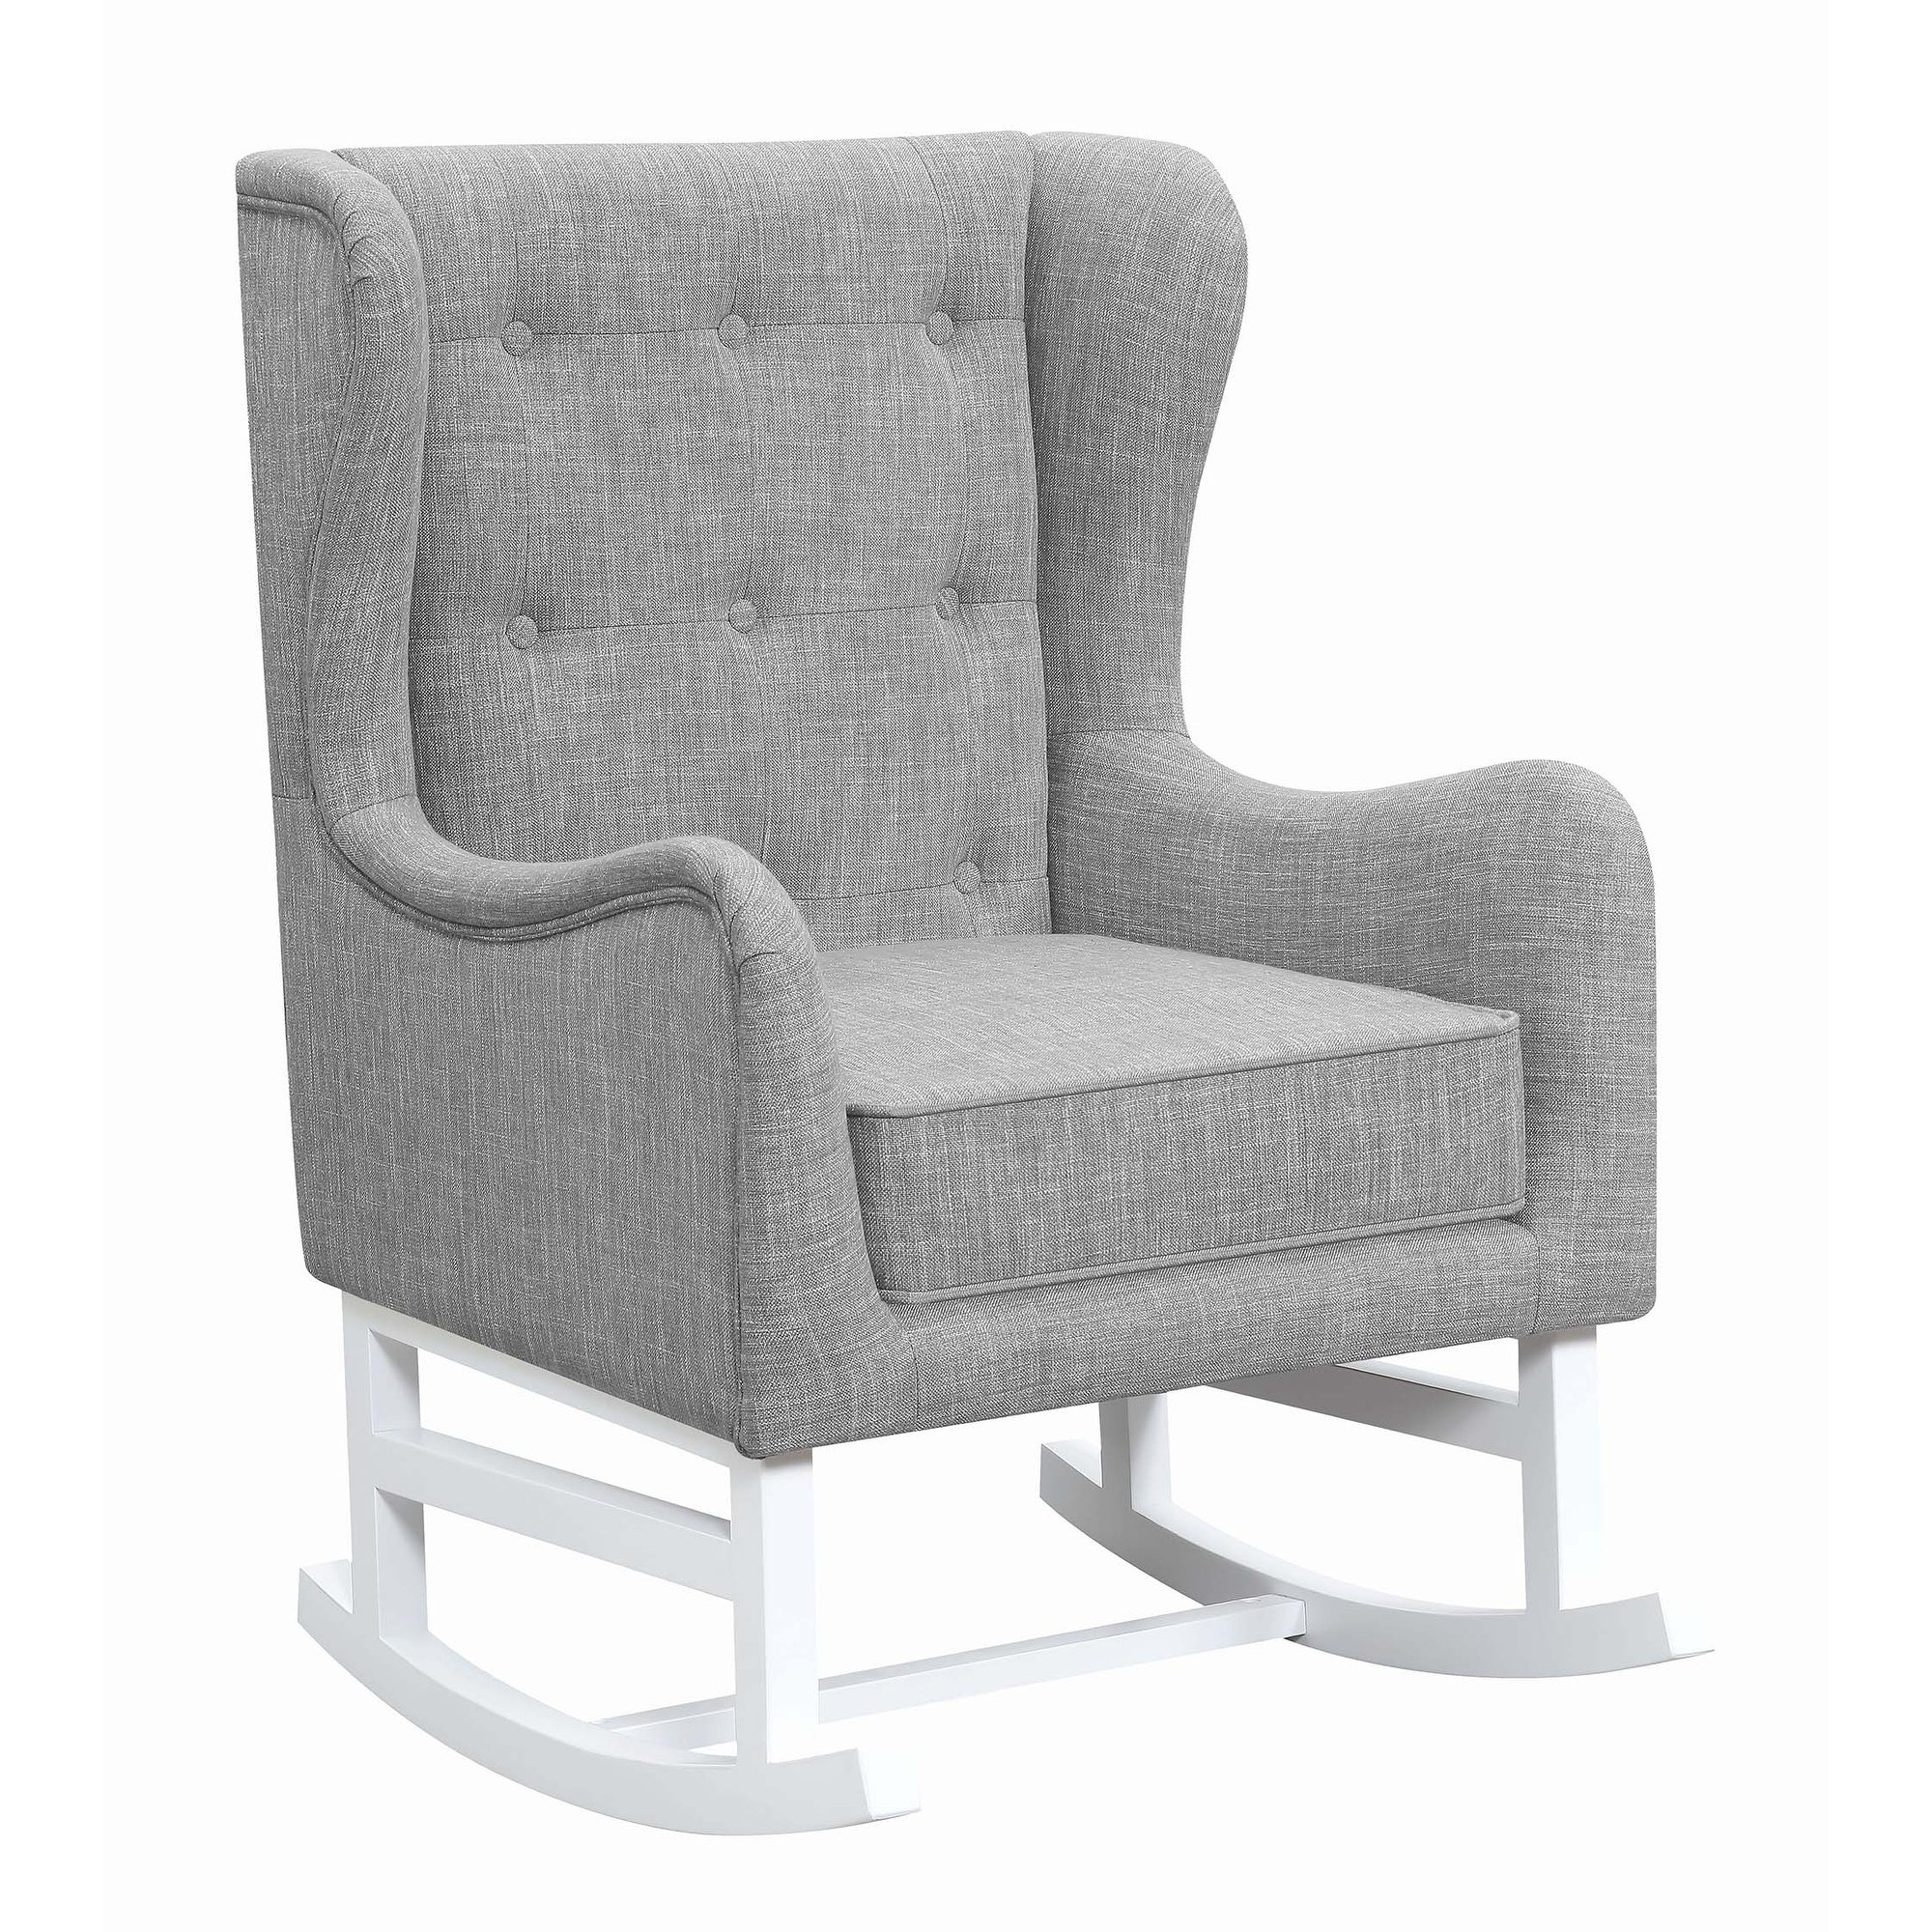 Magnificent Coaster Natalia Upholstered Rocking Chair Grey Gray Fabric Machost Co Dining Chair Design Ideas Machostcouk